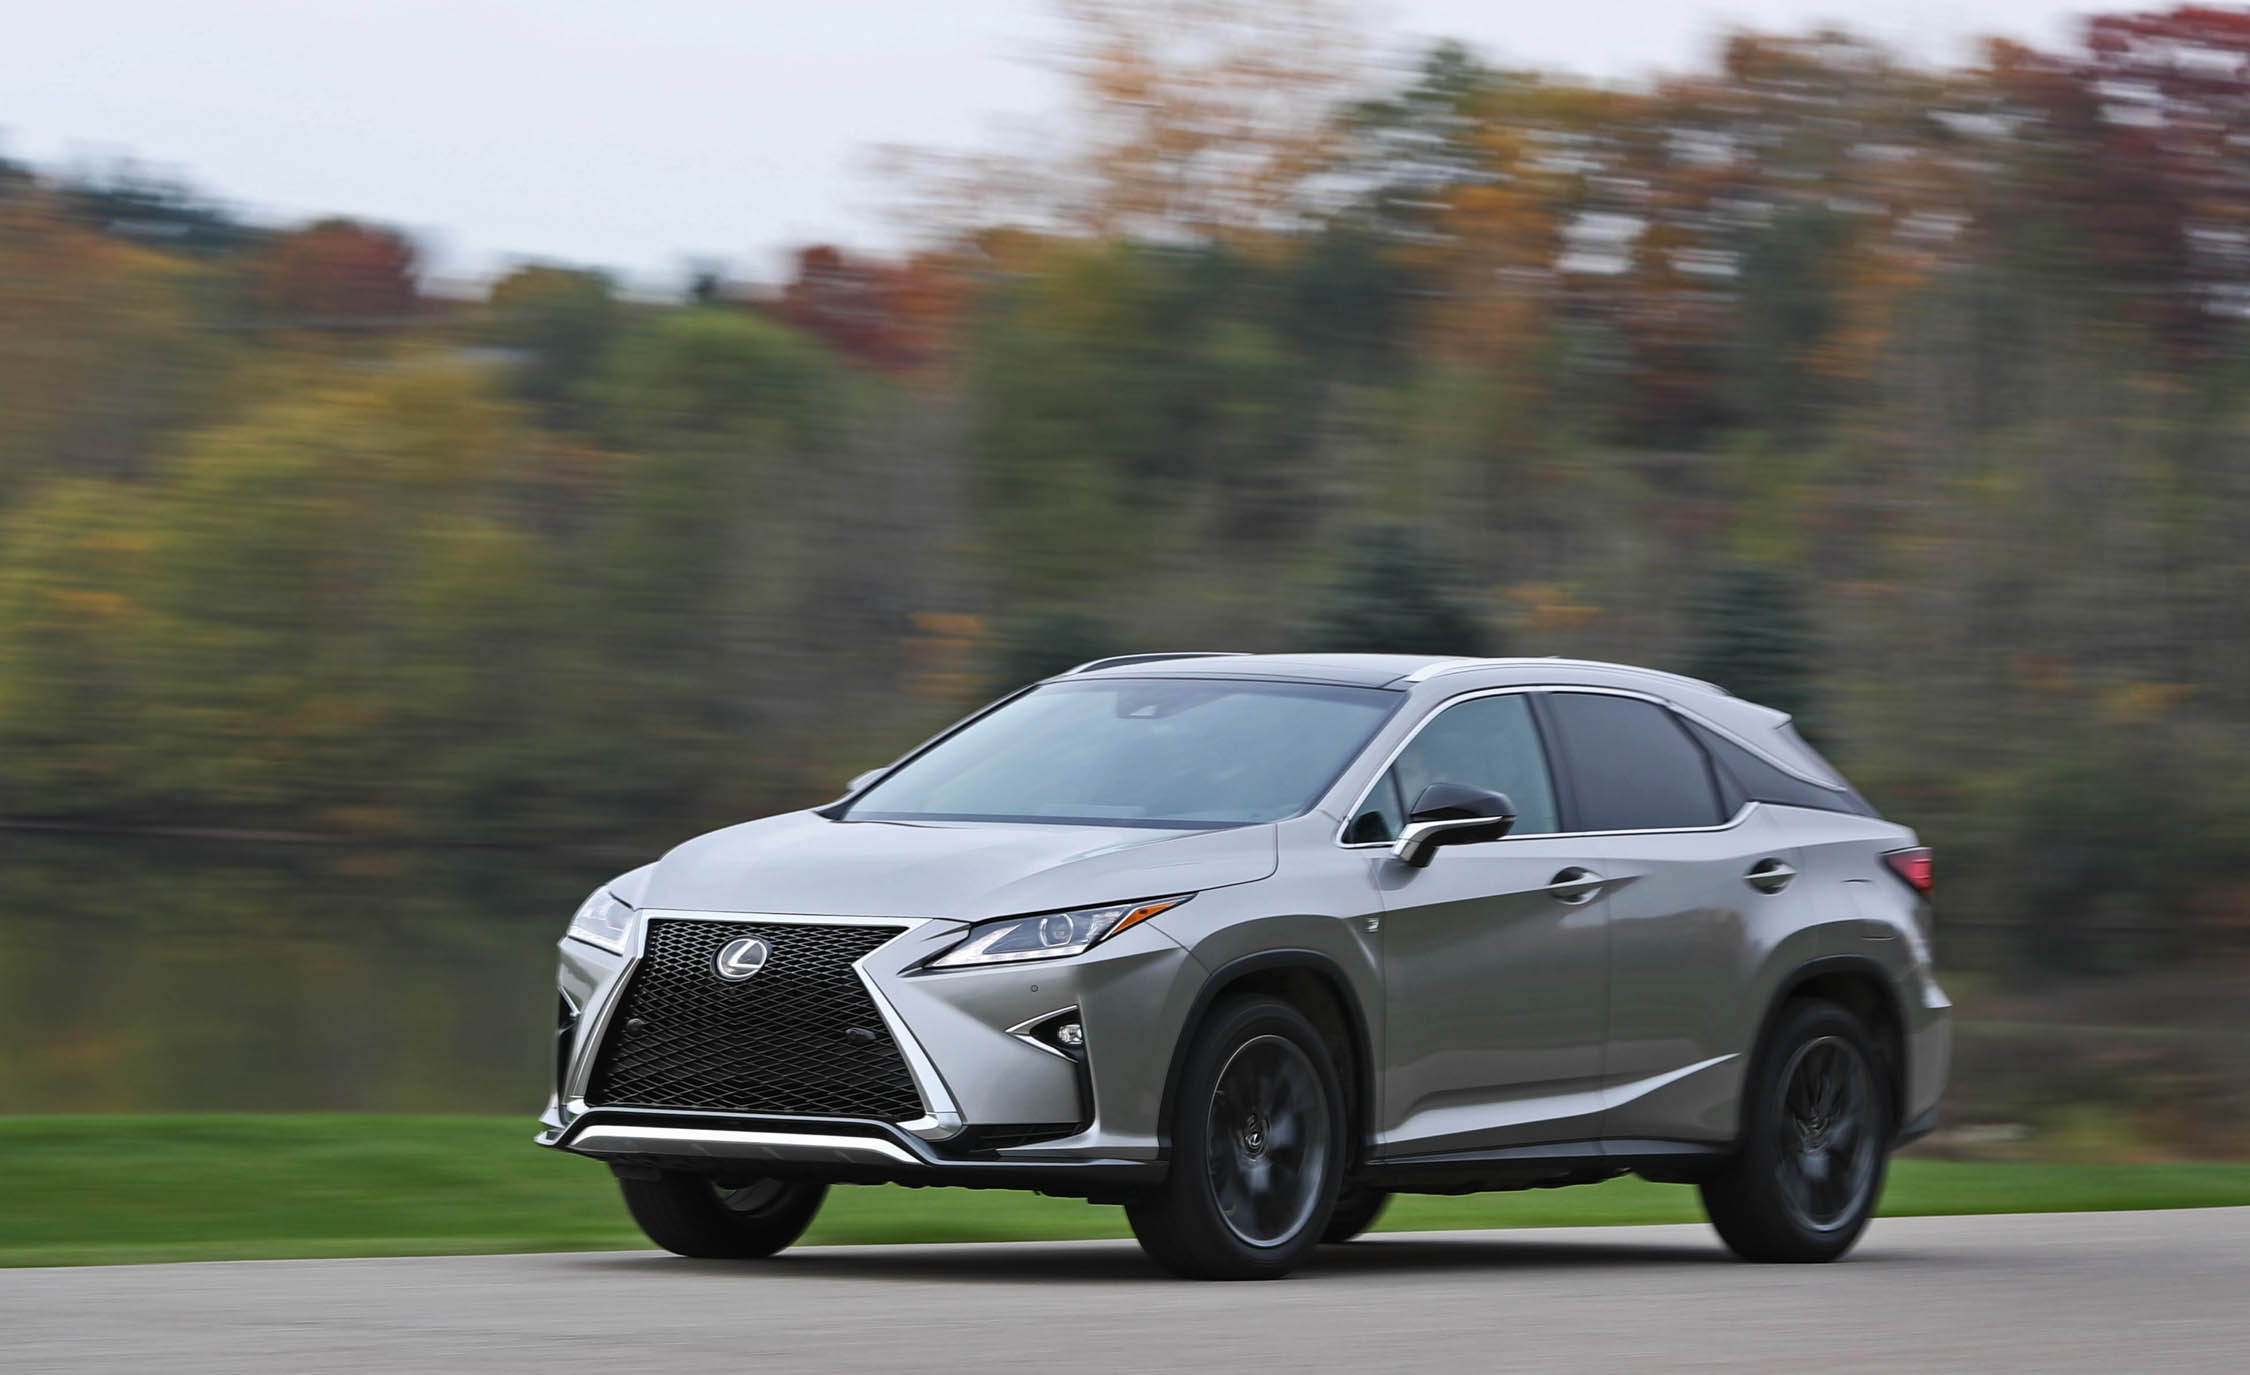 2017 Lexus RX350 F Sport (View 34 of 35)